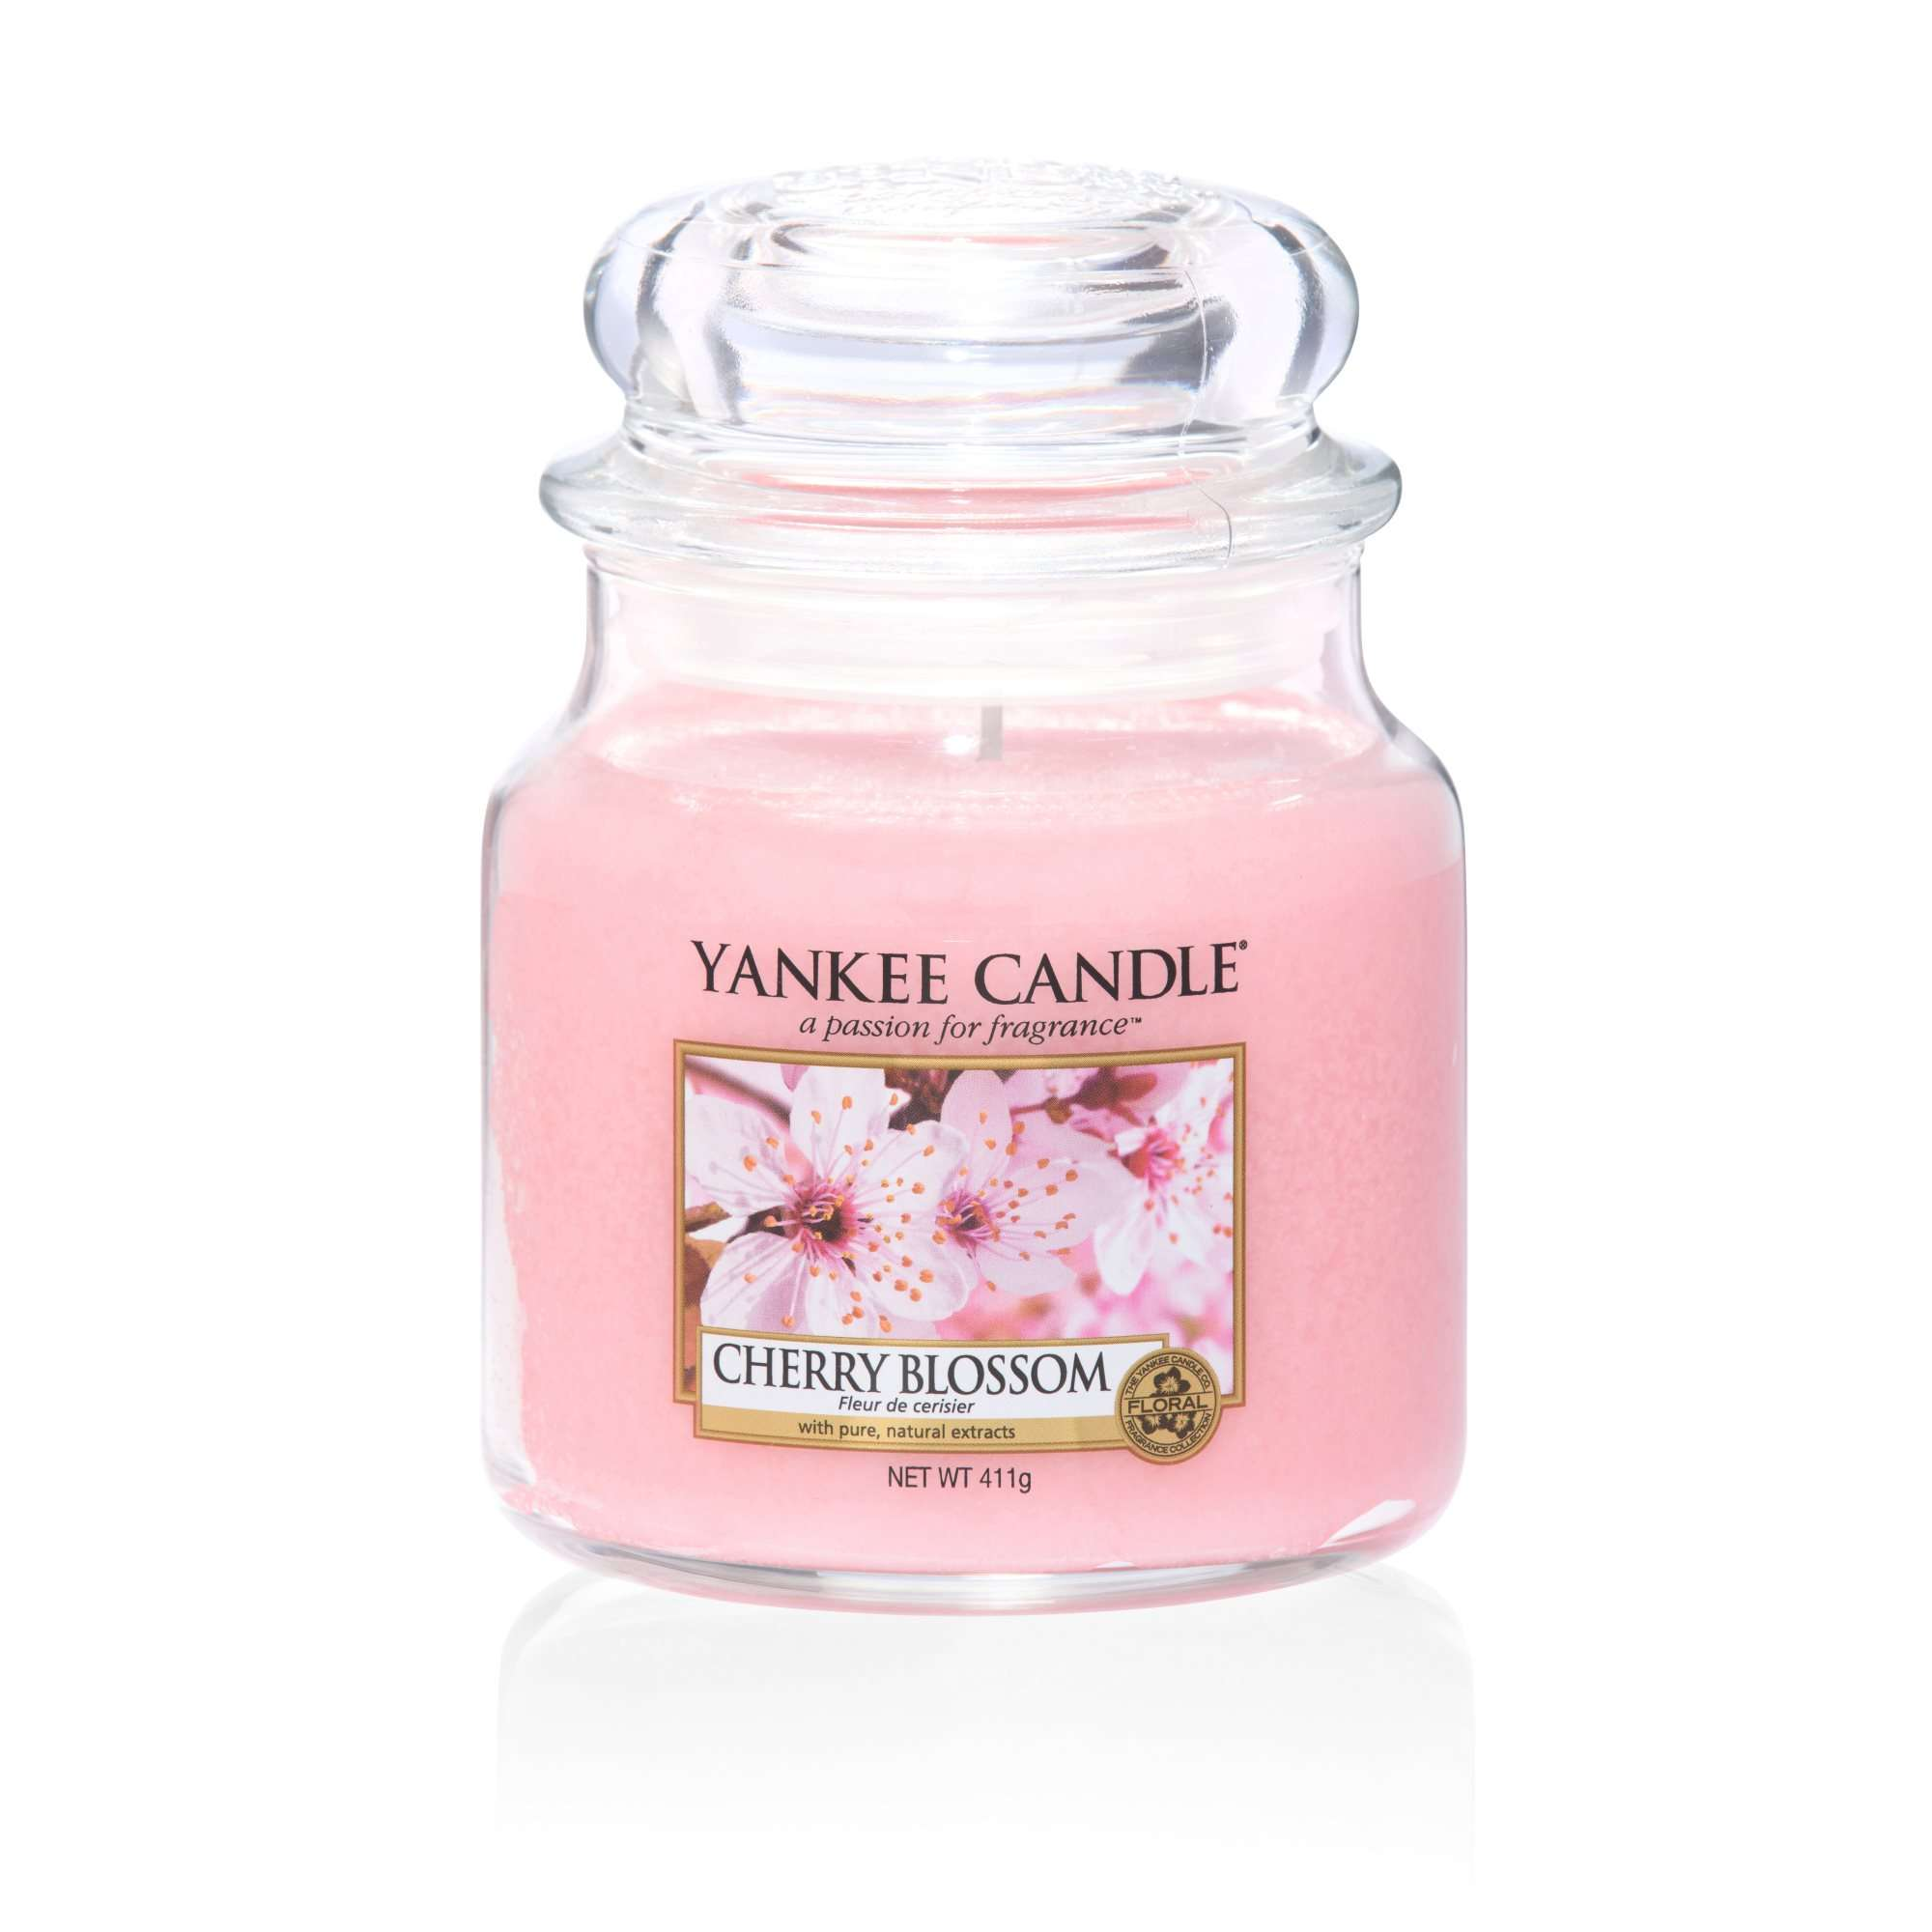 Cherry Blossom Yankee Candle Medium Jar Scented Candle